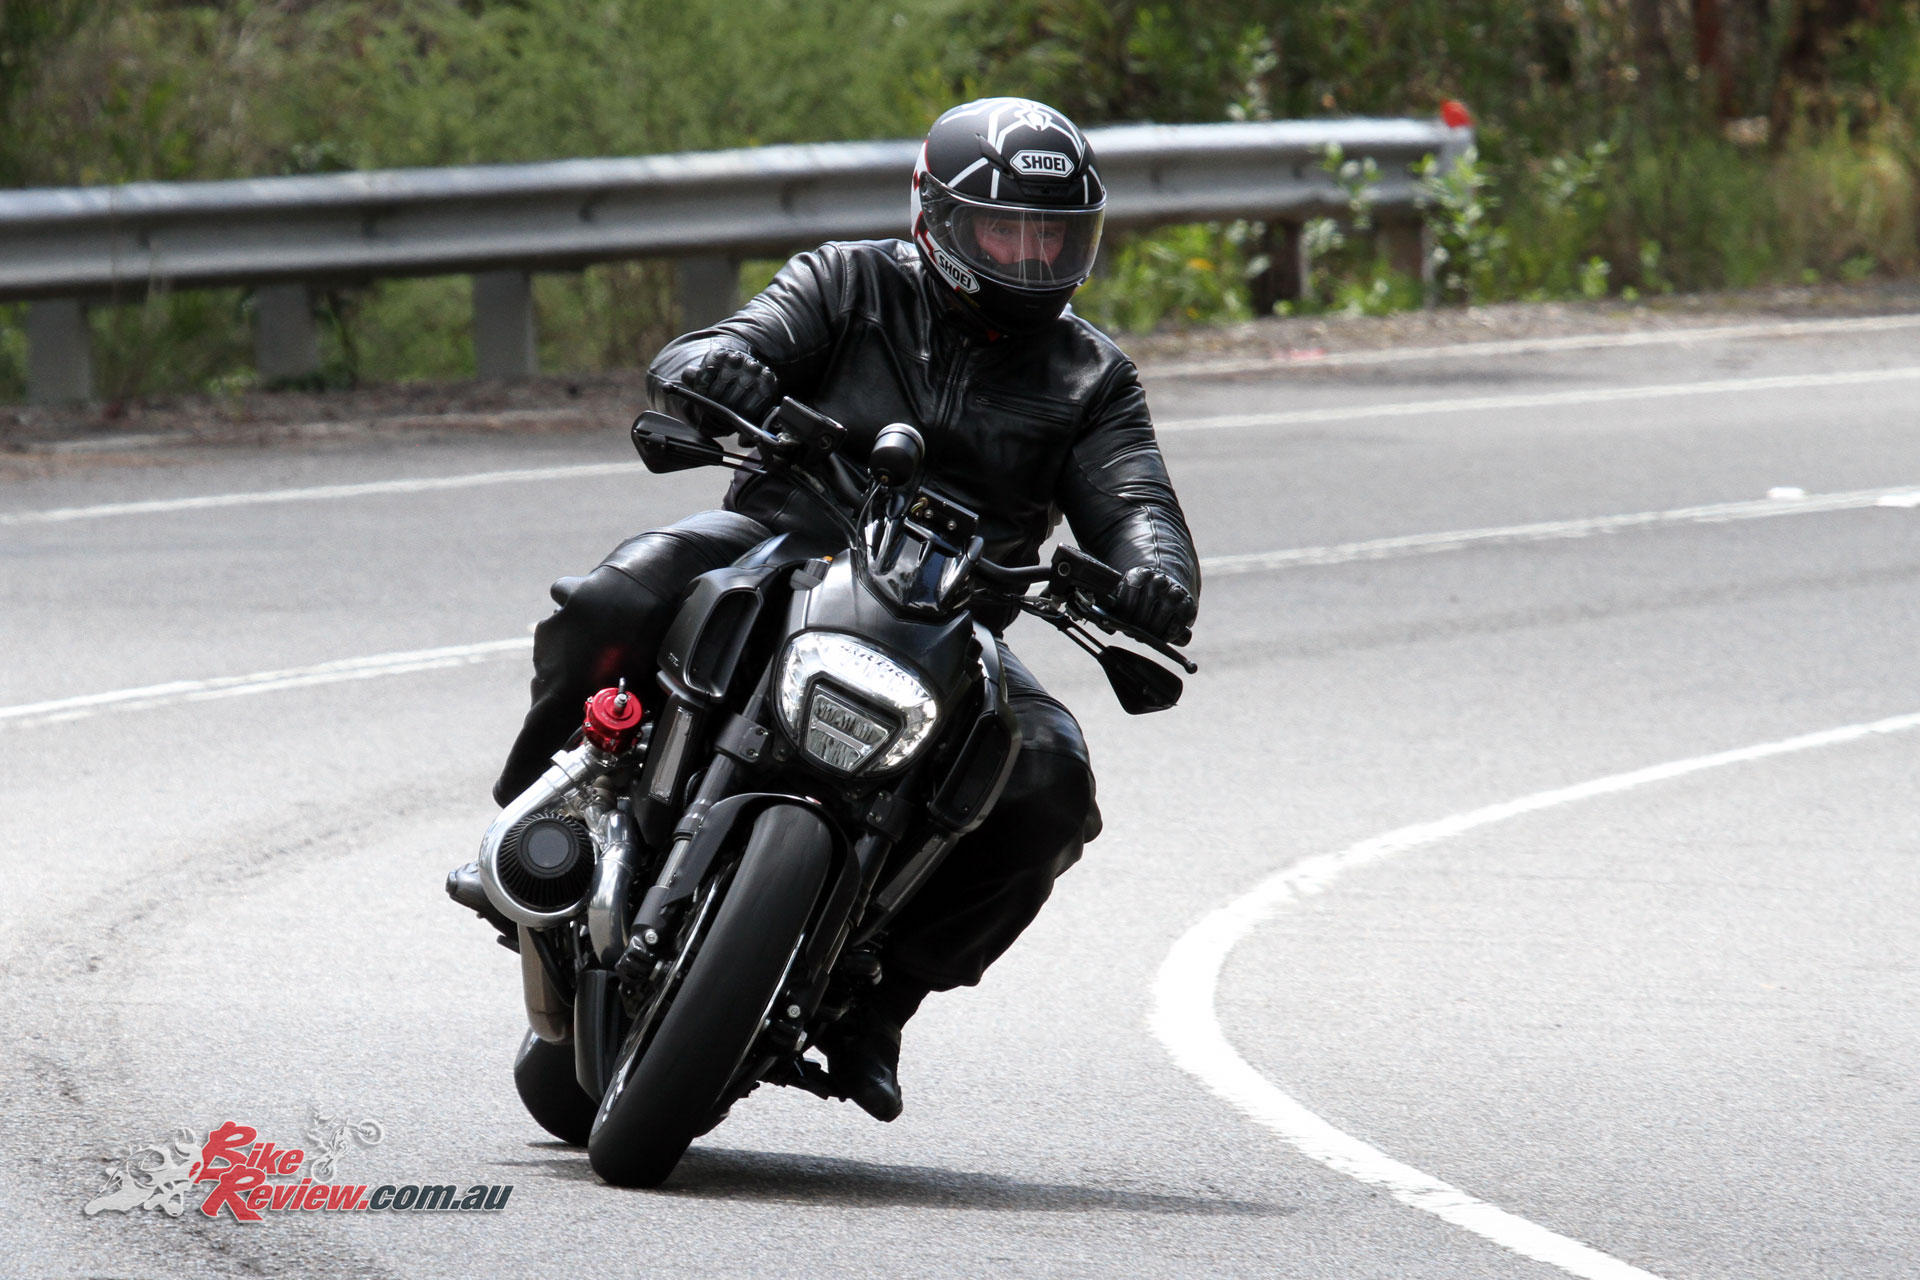 The Diavel is not your average cruiser, and the S&R Pro job takes it to the next level